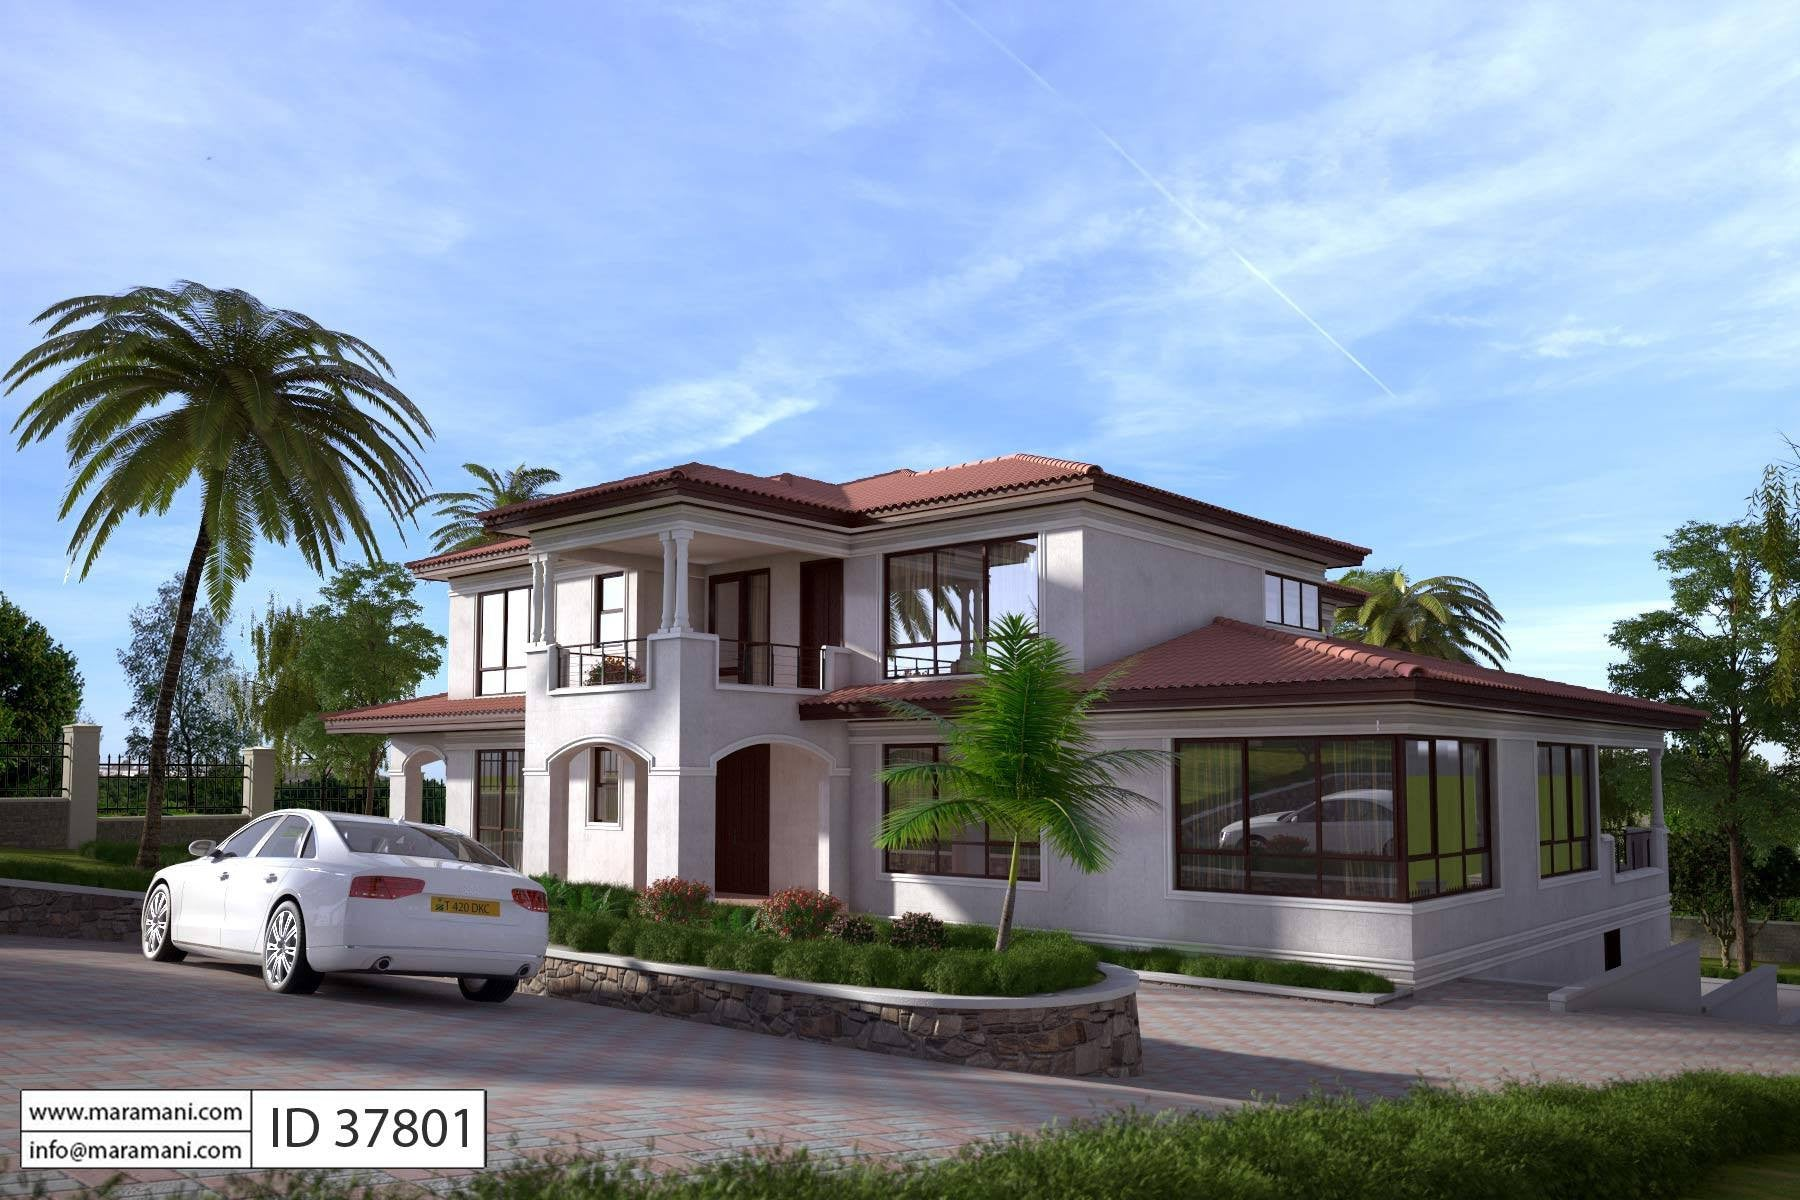 7 bedroom house design id 37801 house designs by maramani for Building a one room house